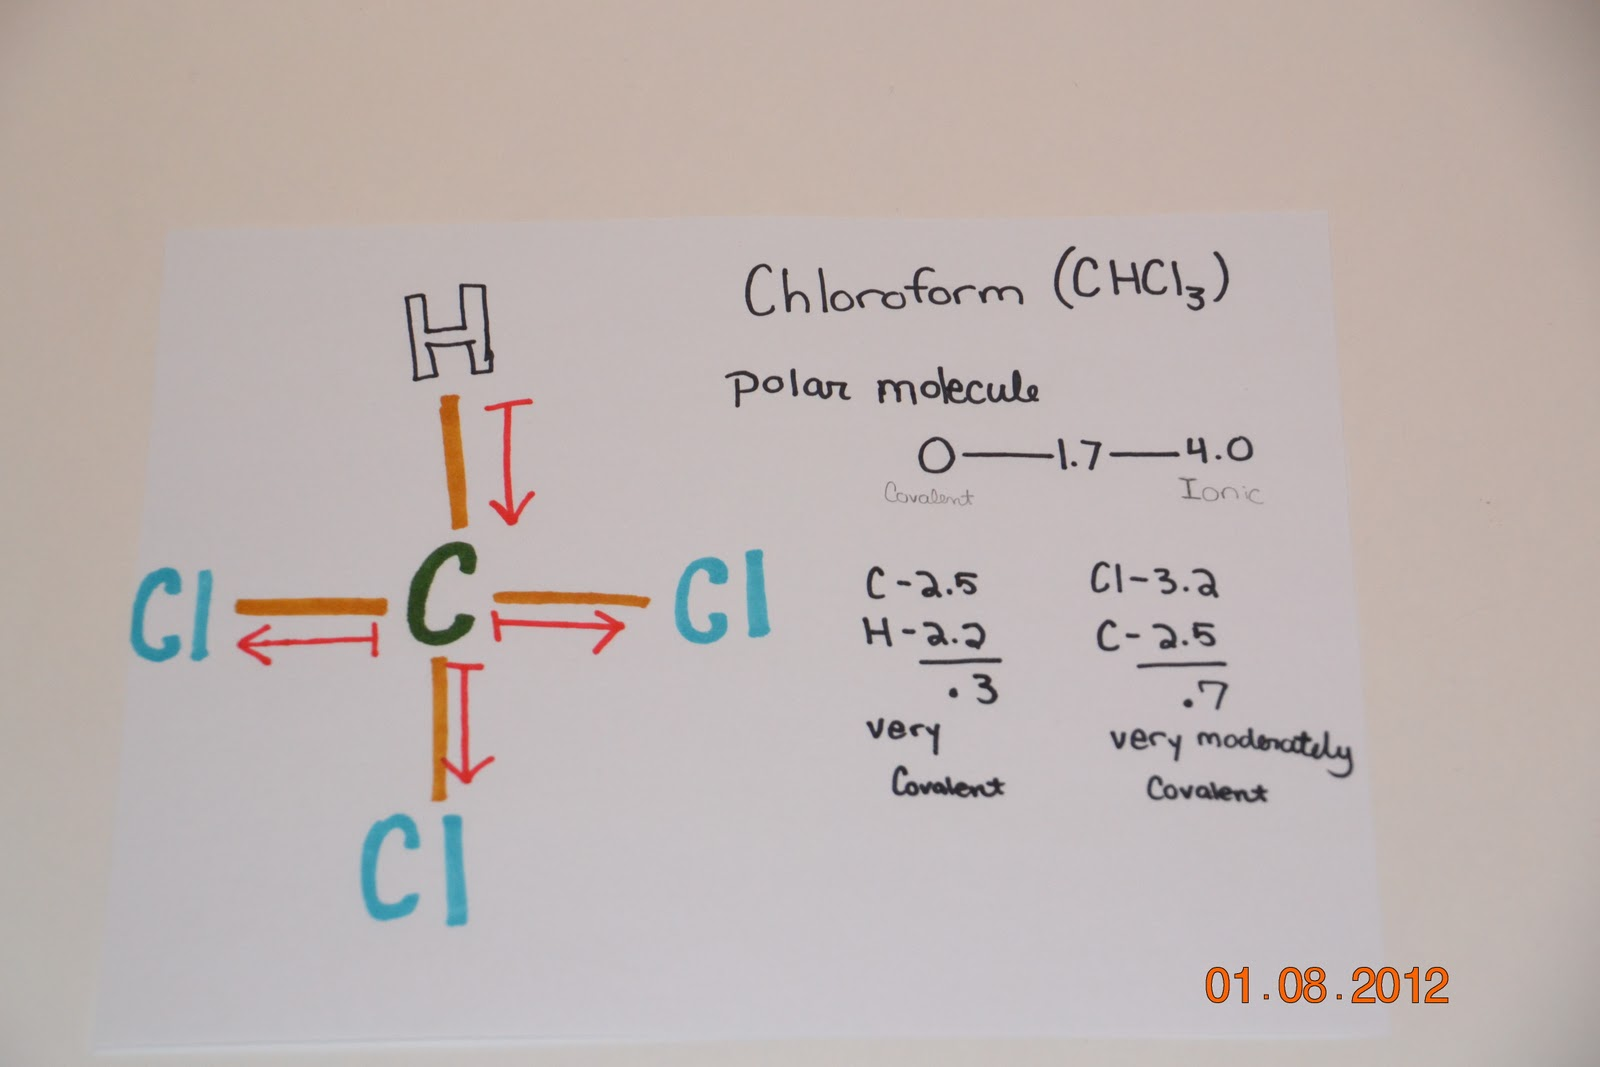 the chemistry of chloroform dot diagram hydrogen chcl3 dot diagram #5